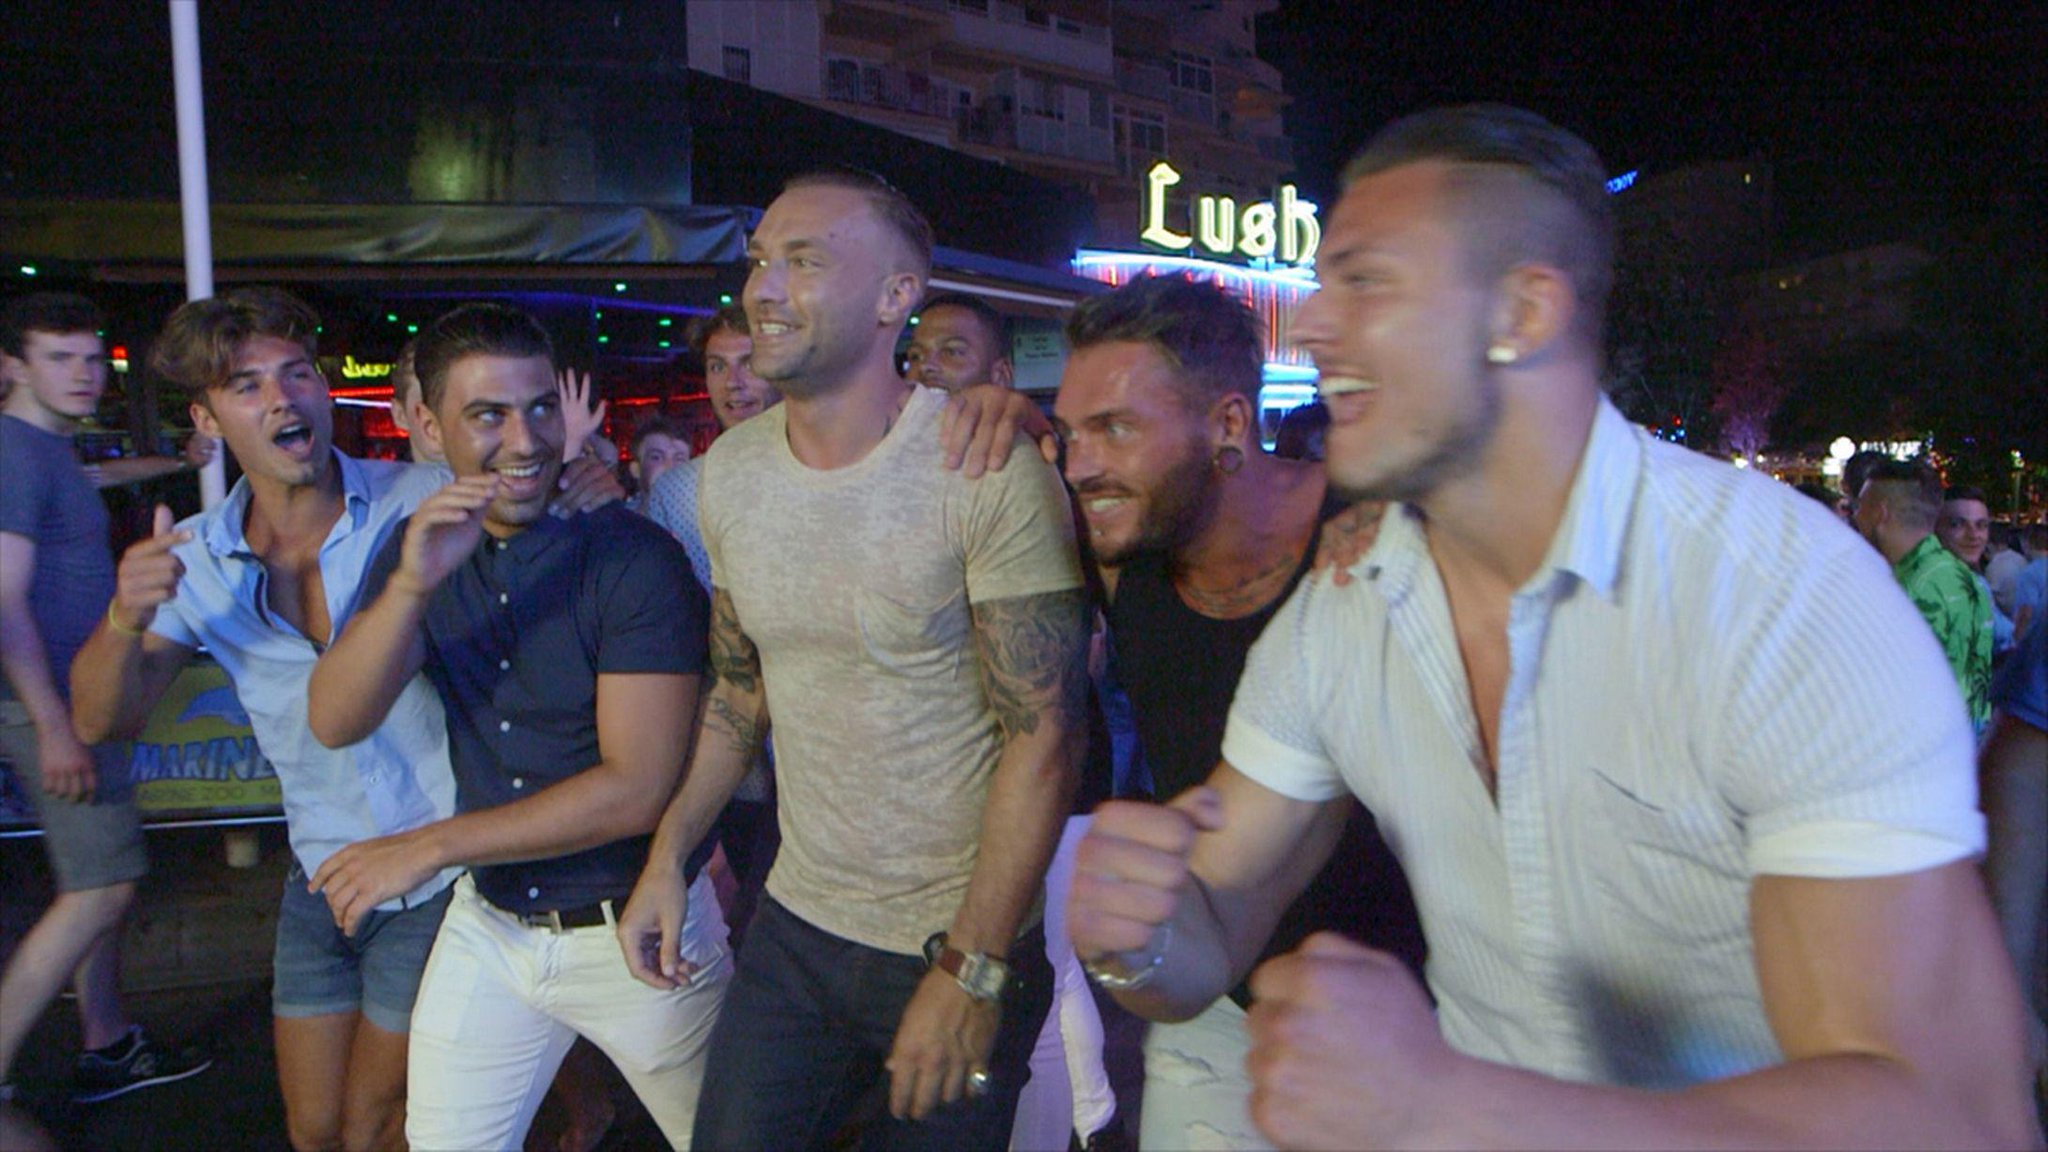 Yesterday's episode of #LoveIsland saw the boys venture out with Callum Best, receiving 525,000 viewers http://t.co/qSUigXrPhb